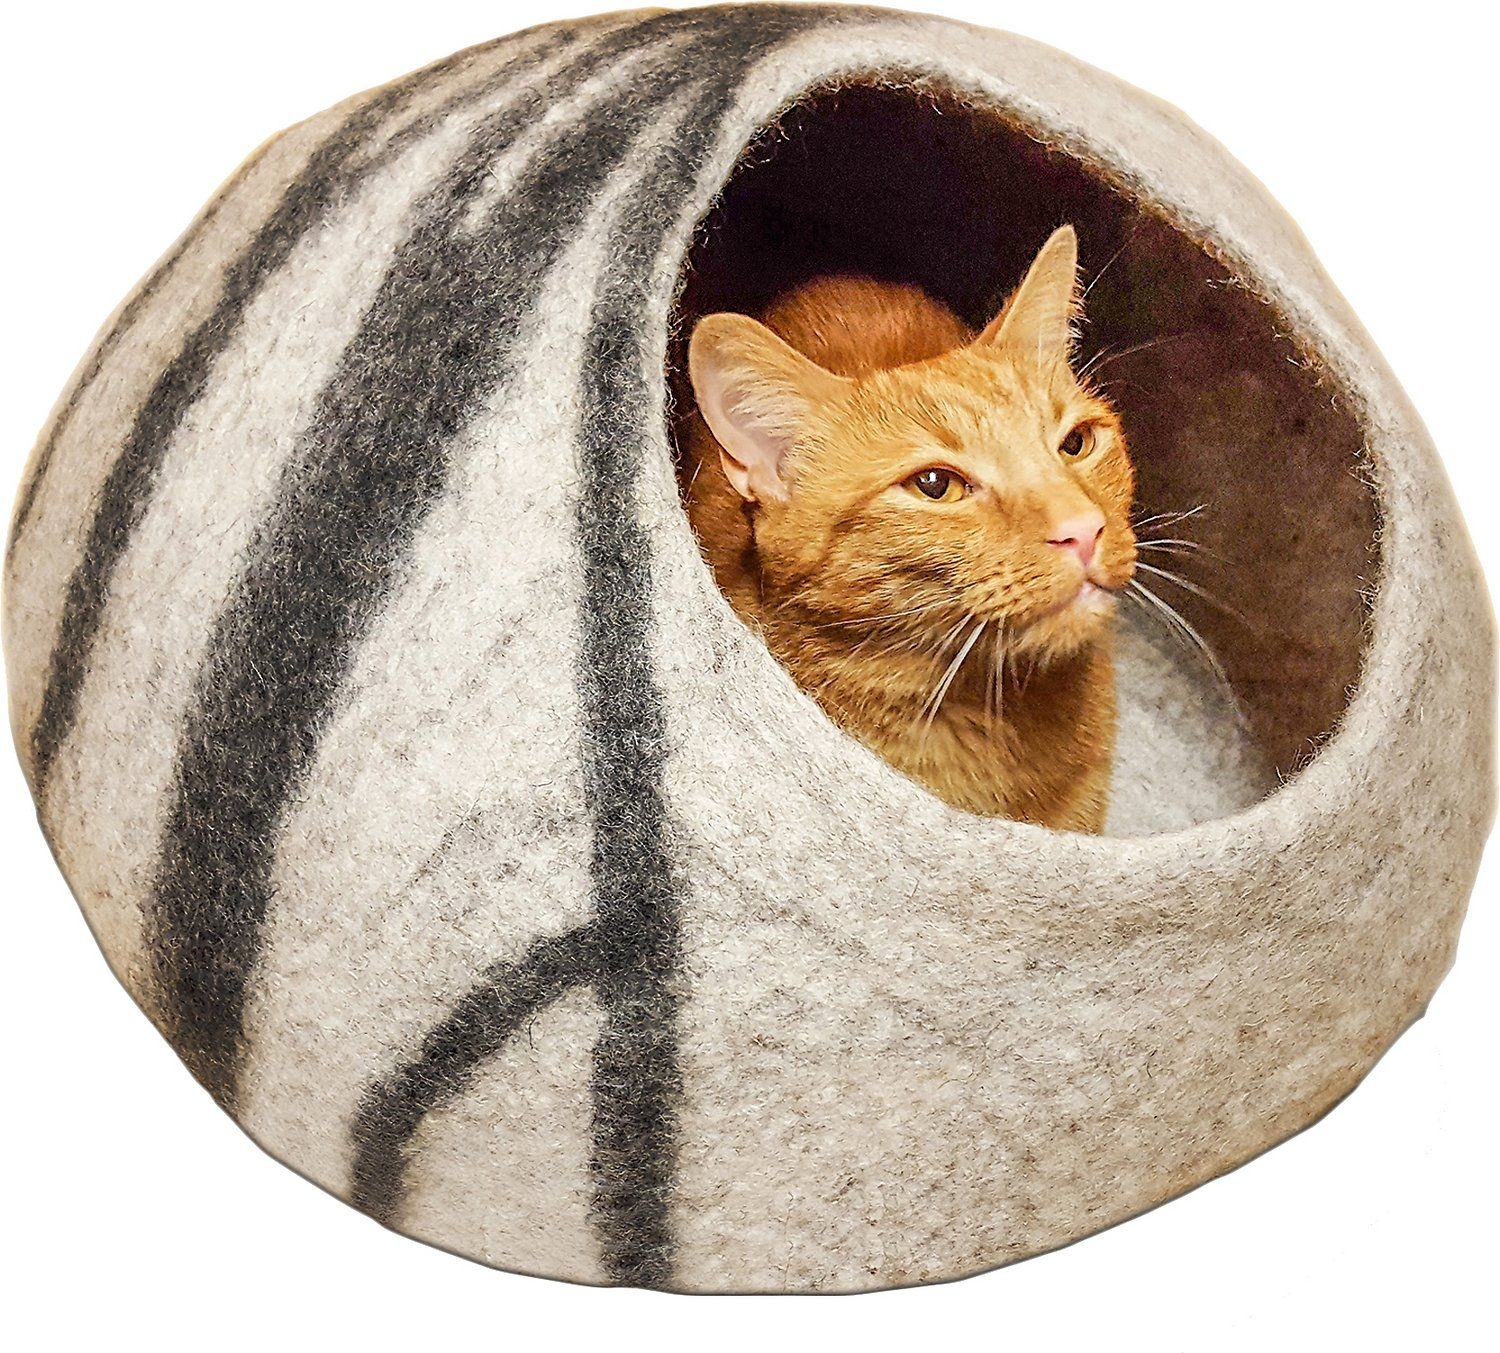 Give your cat the gift of premium comfort with the Meowfia